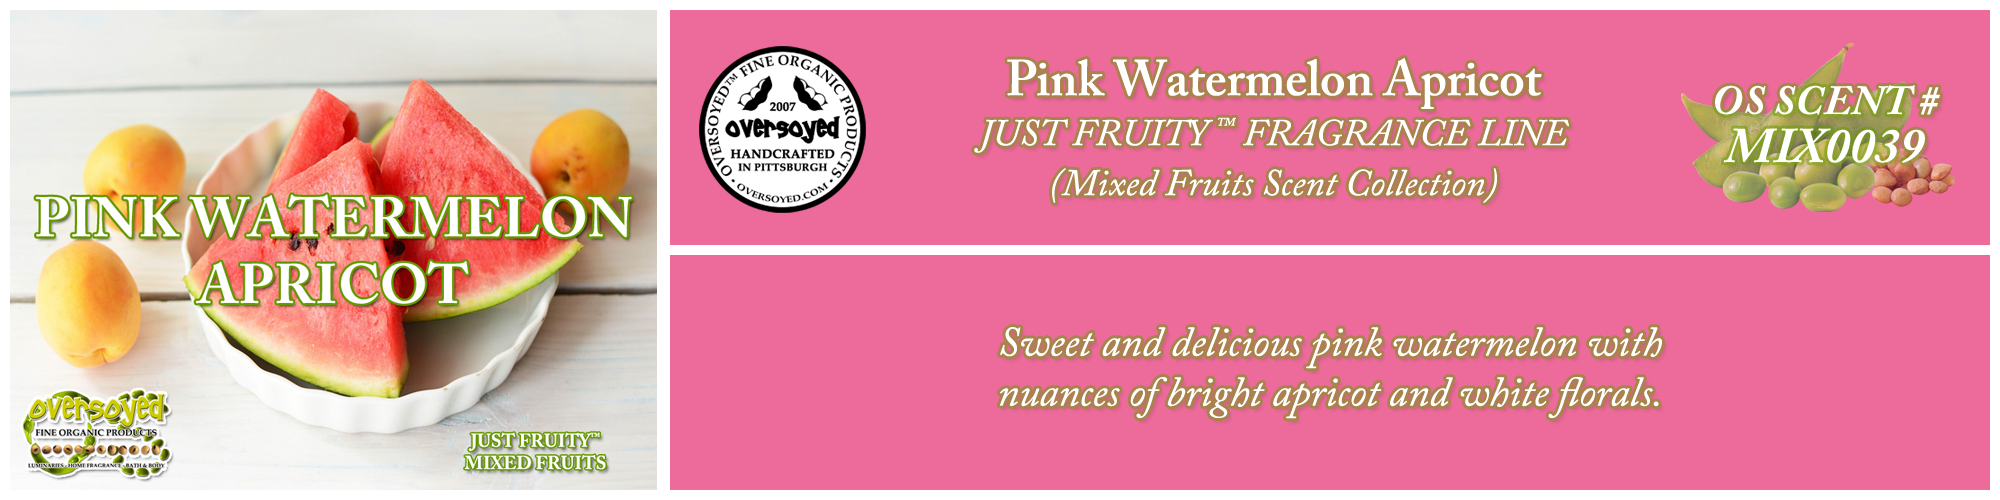 Pink Watermelon Apricot Handcrafted Products Collection